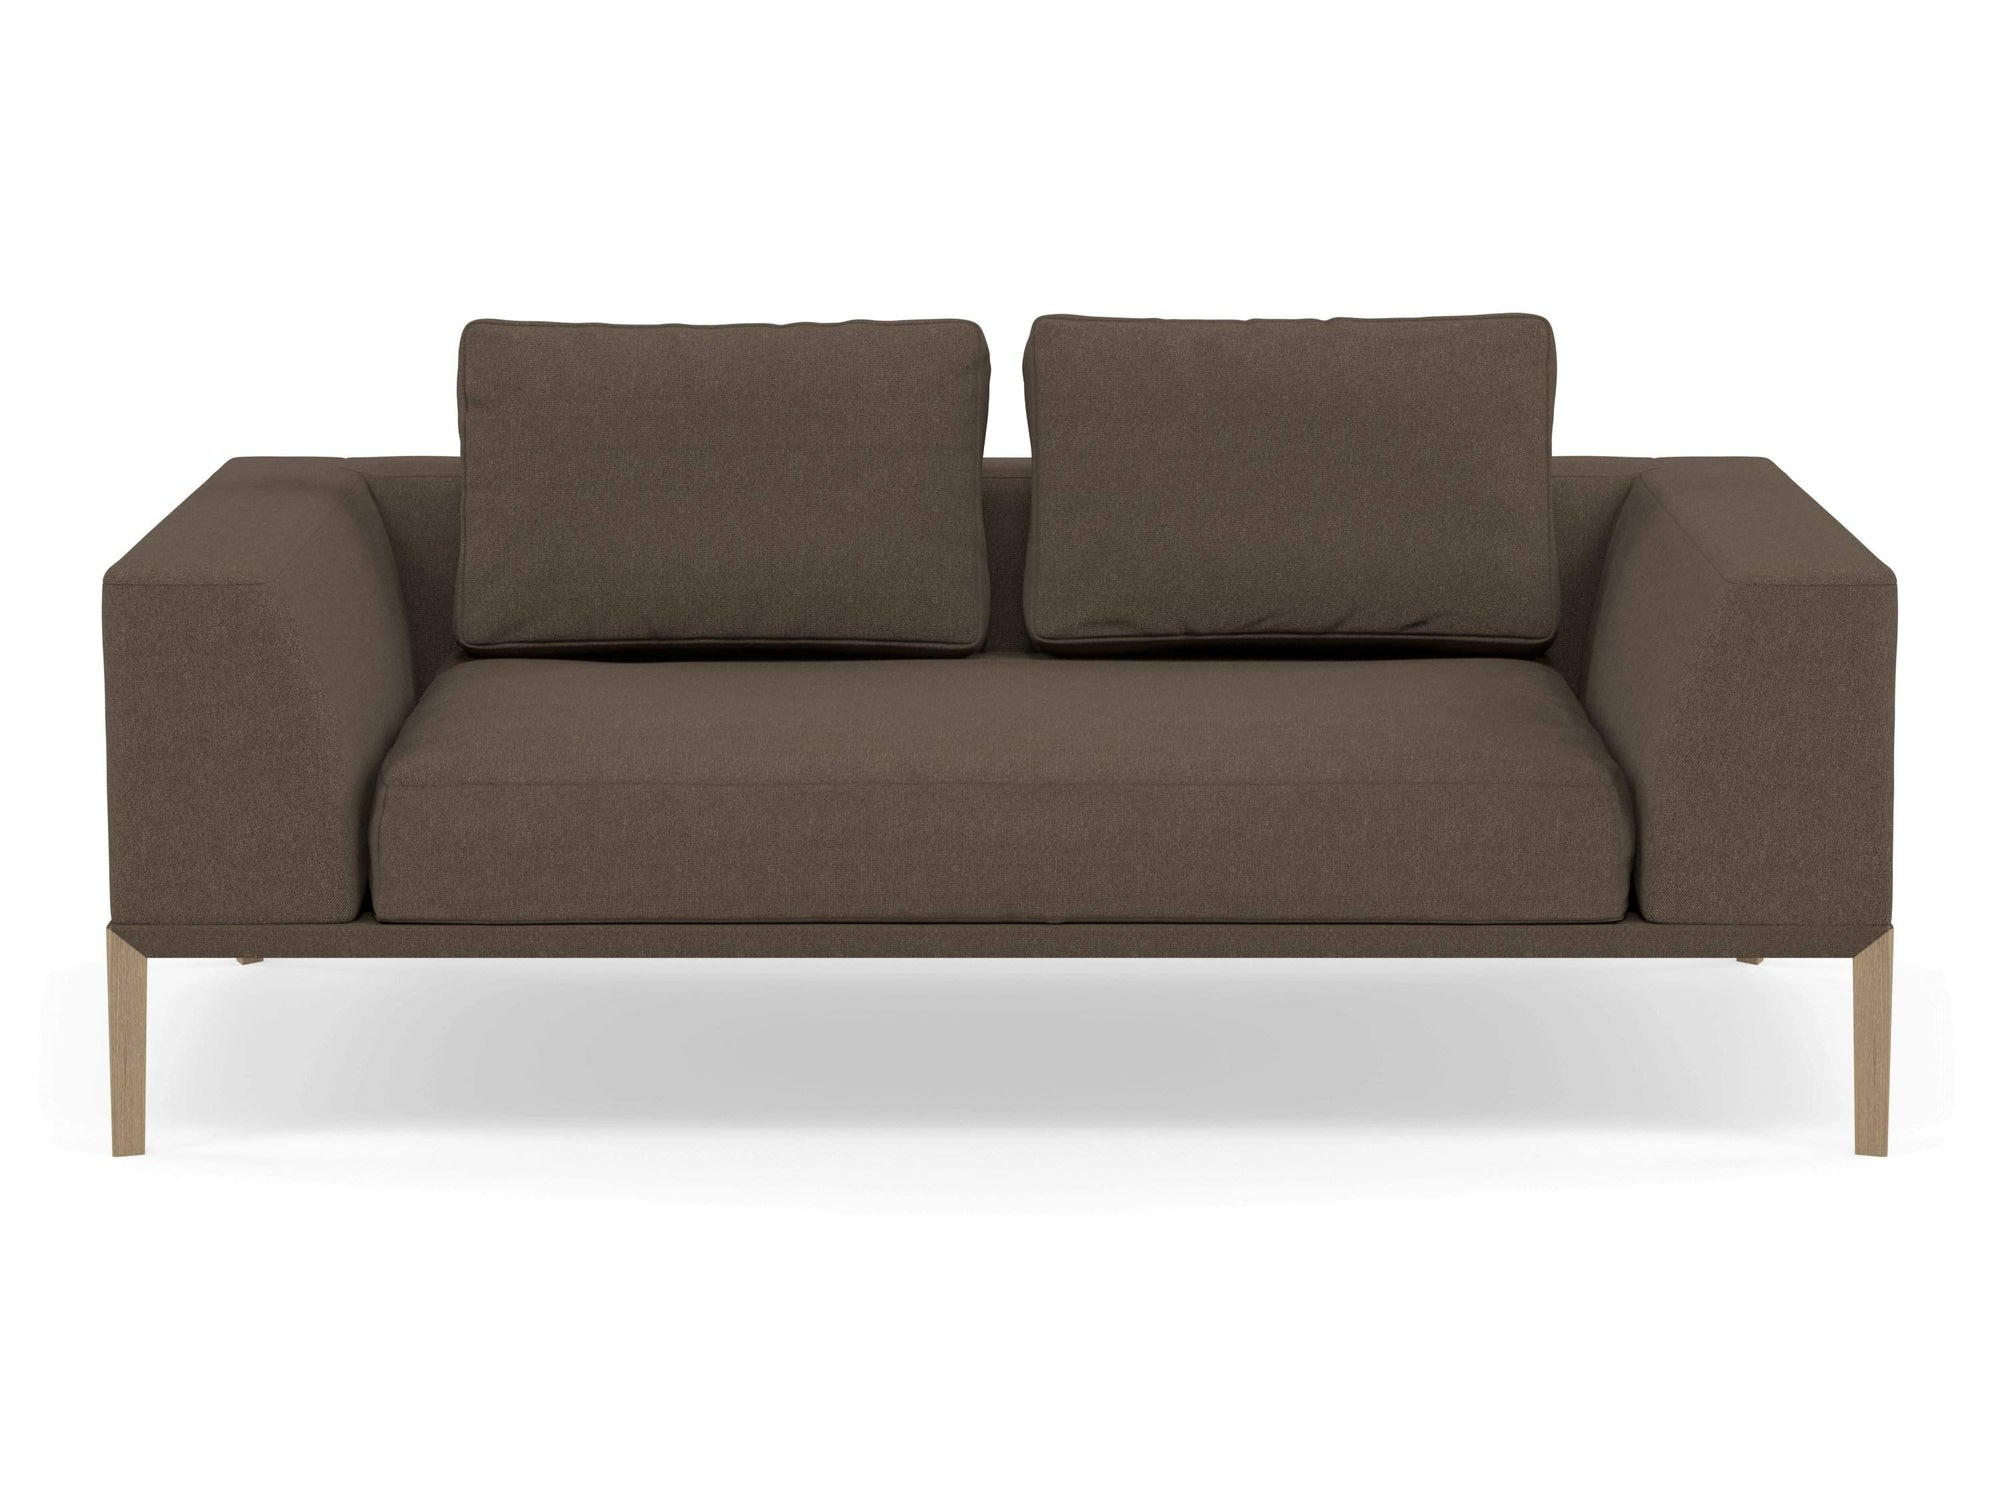 Modern 2 Seater Sofa with 2 Armrests in Coffee Brown Fabric-Natural Oak-Distinct Designs (London) Ltd